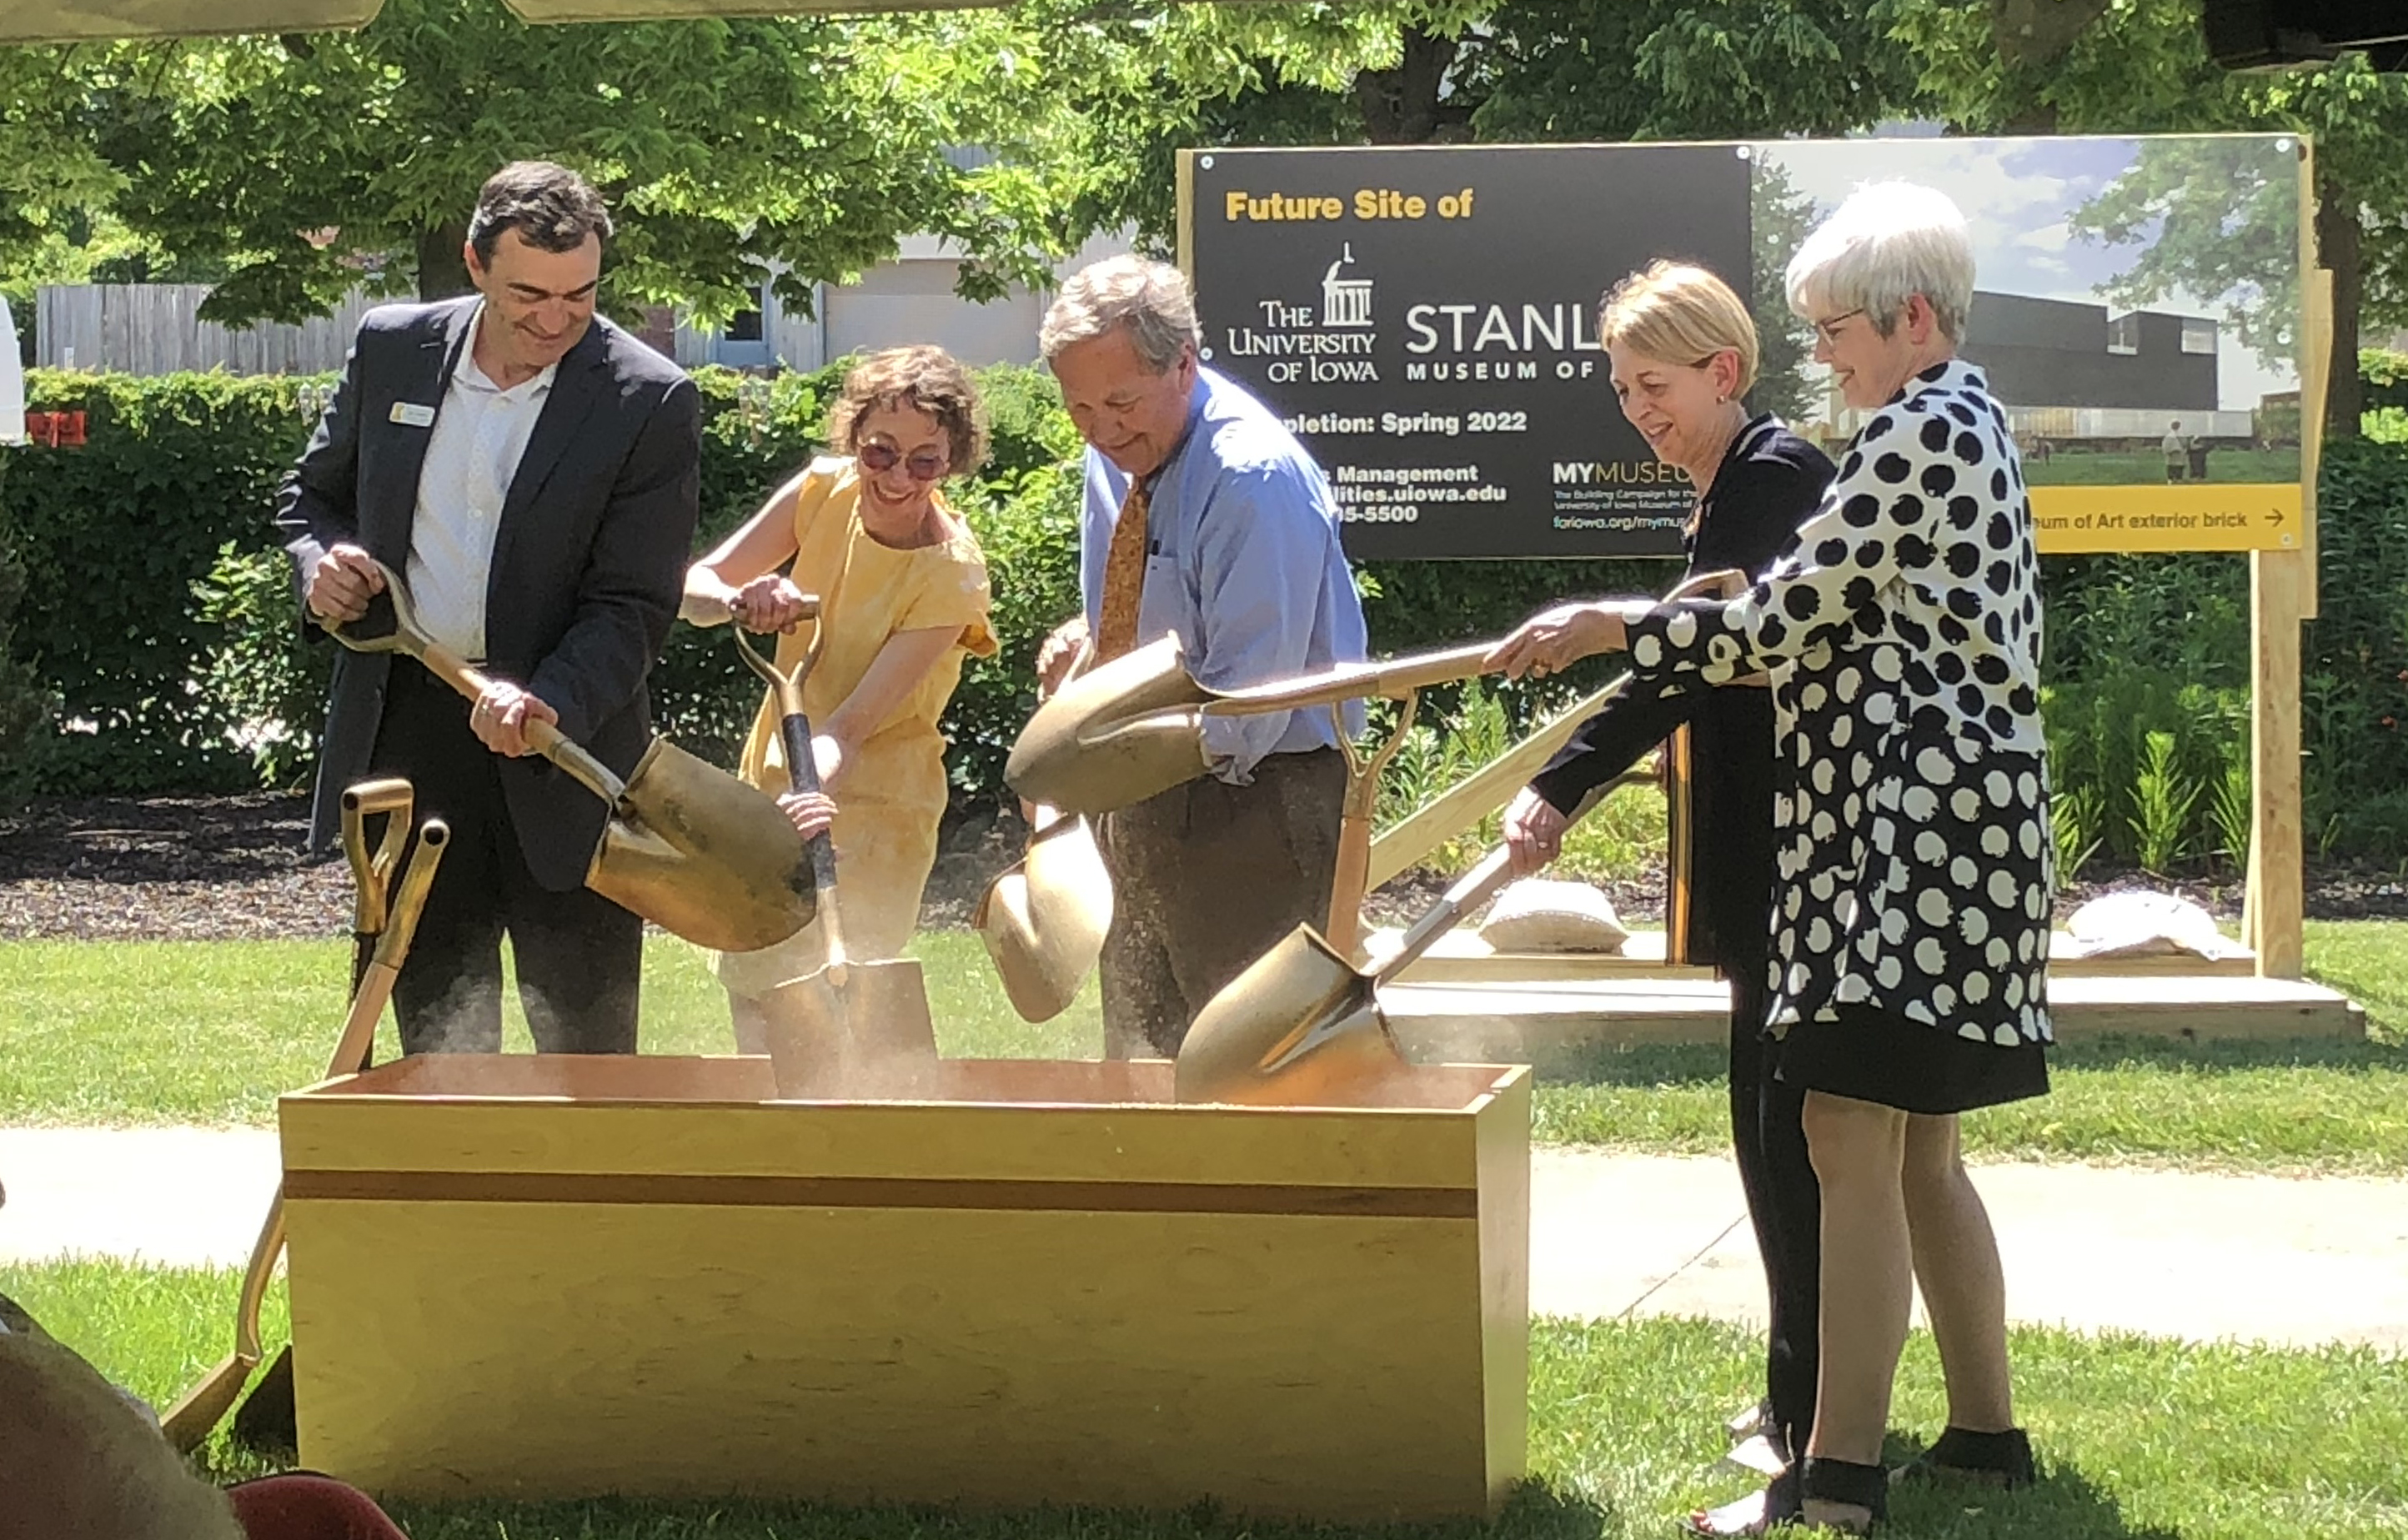 Stanley Museum of Art Ceremonial Groundbreaking